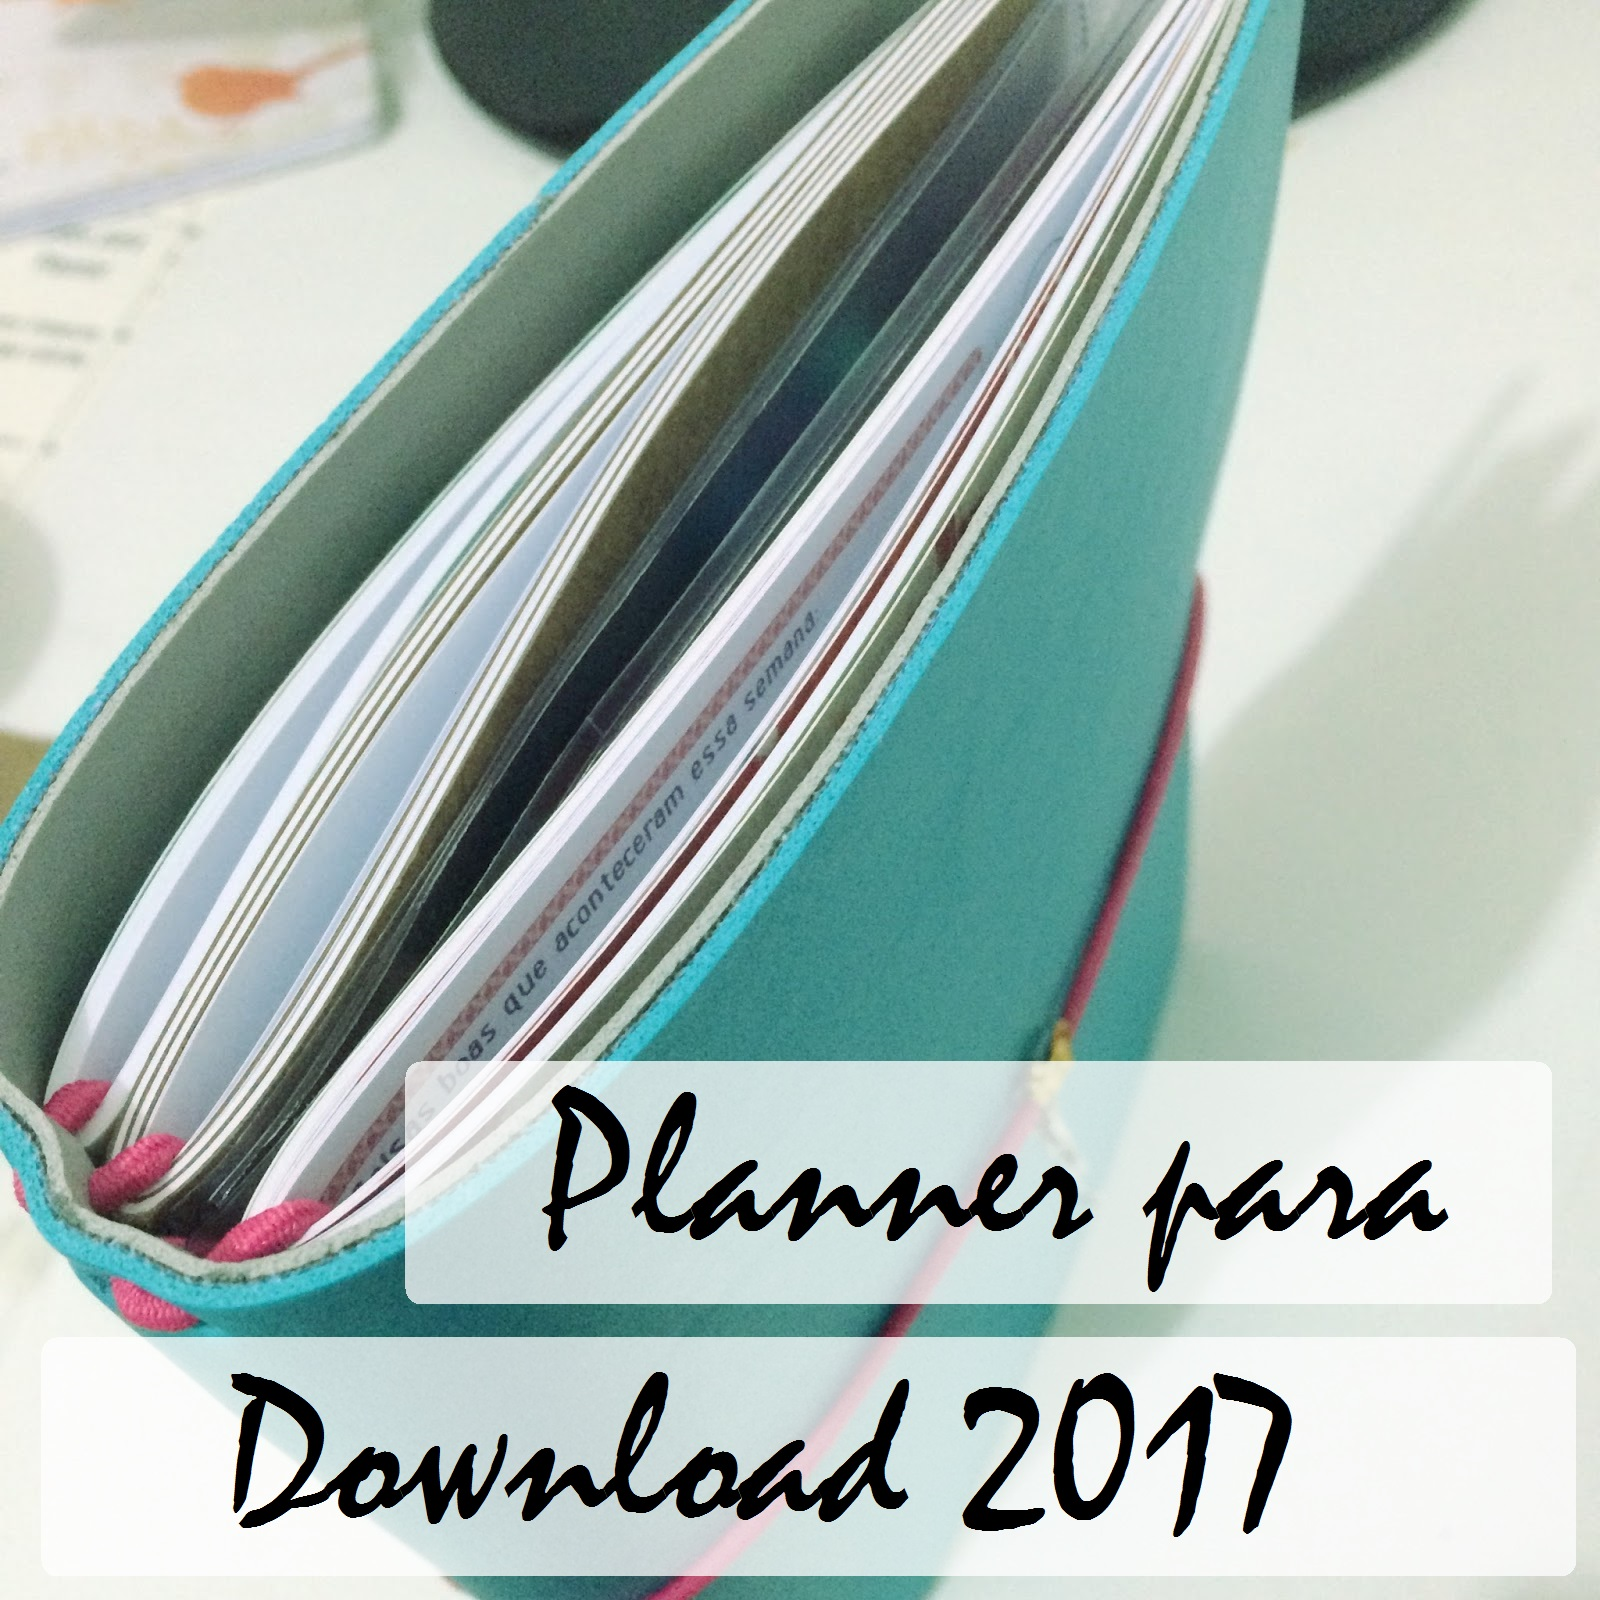 planner-para-dowloand-2017